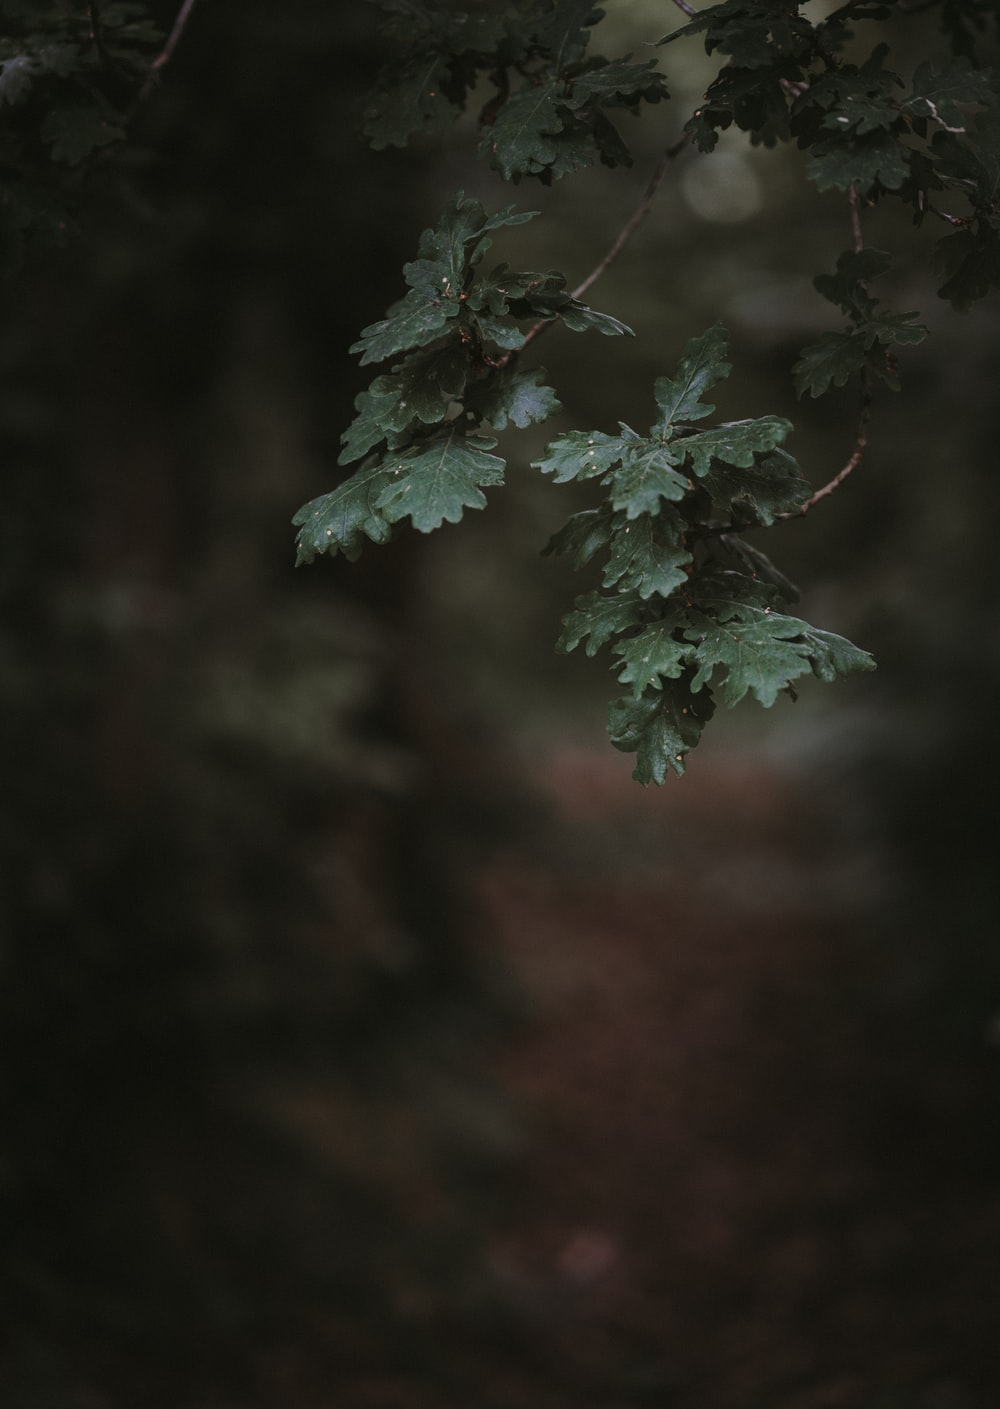 green leafed plant in selective focus photography